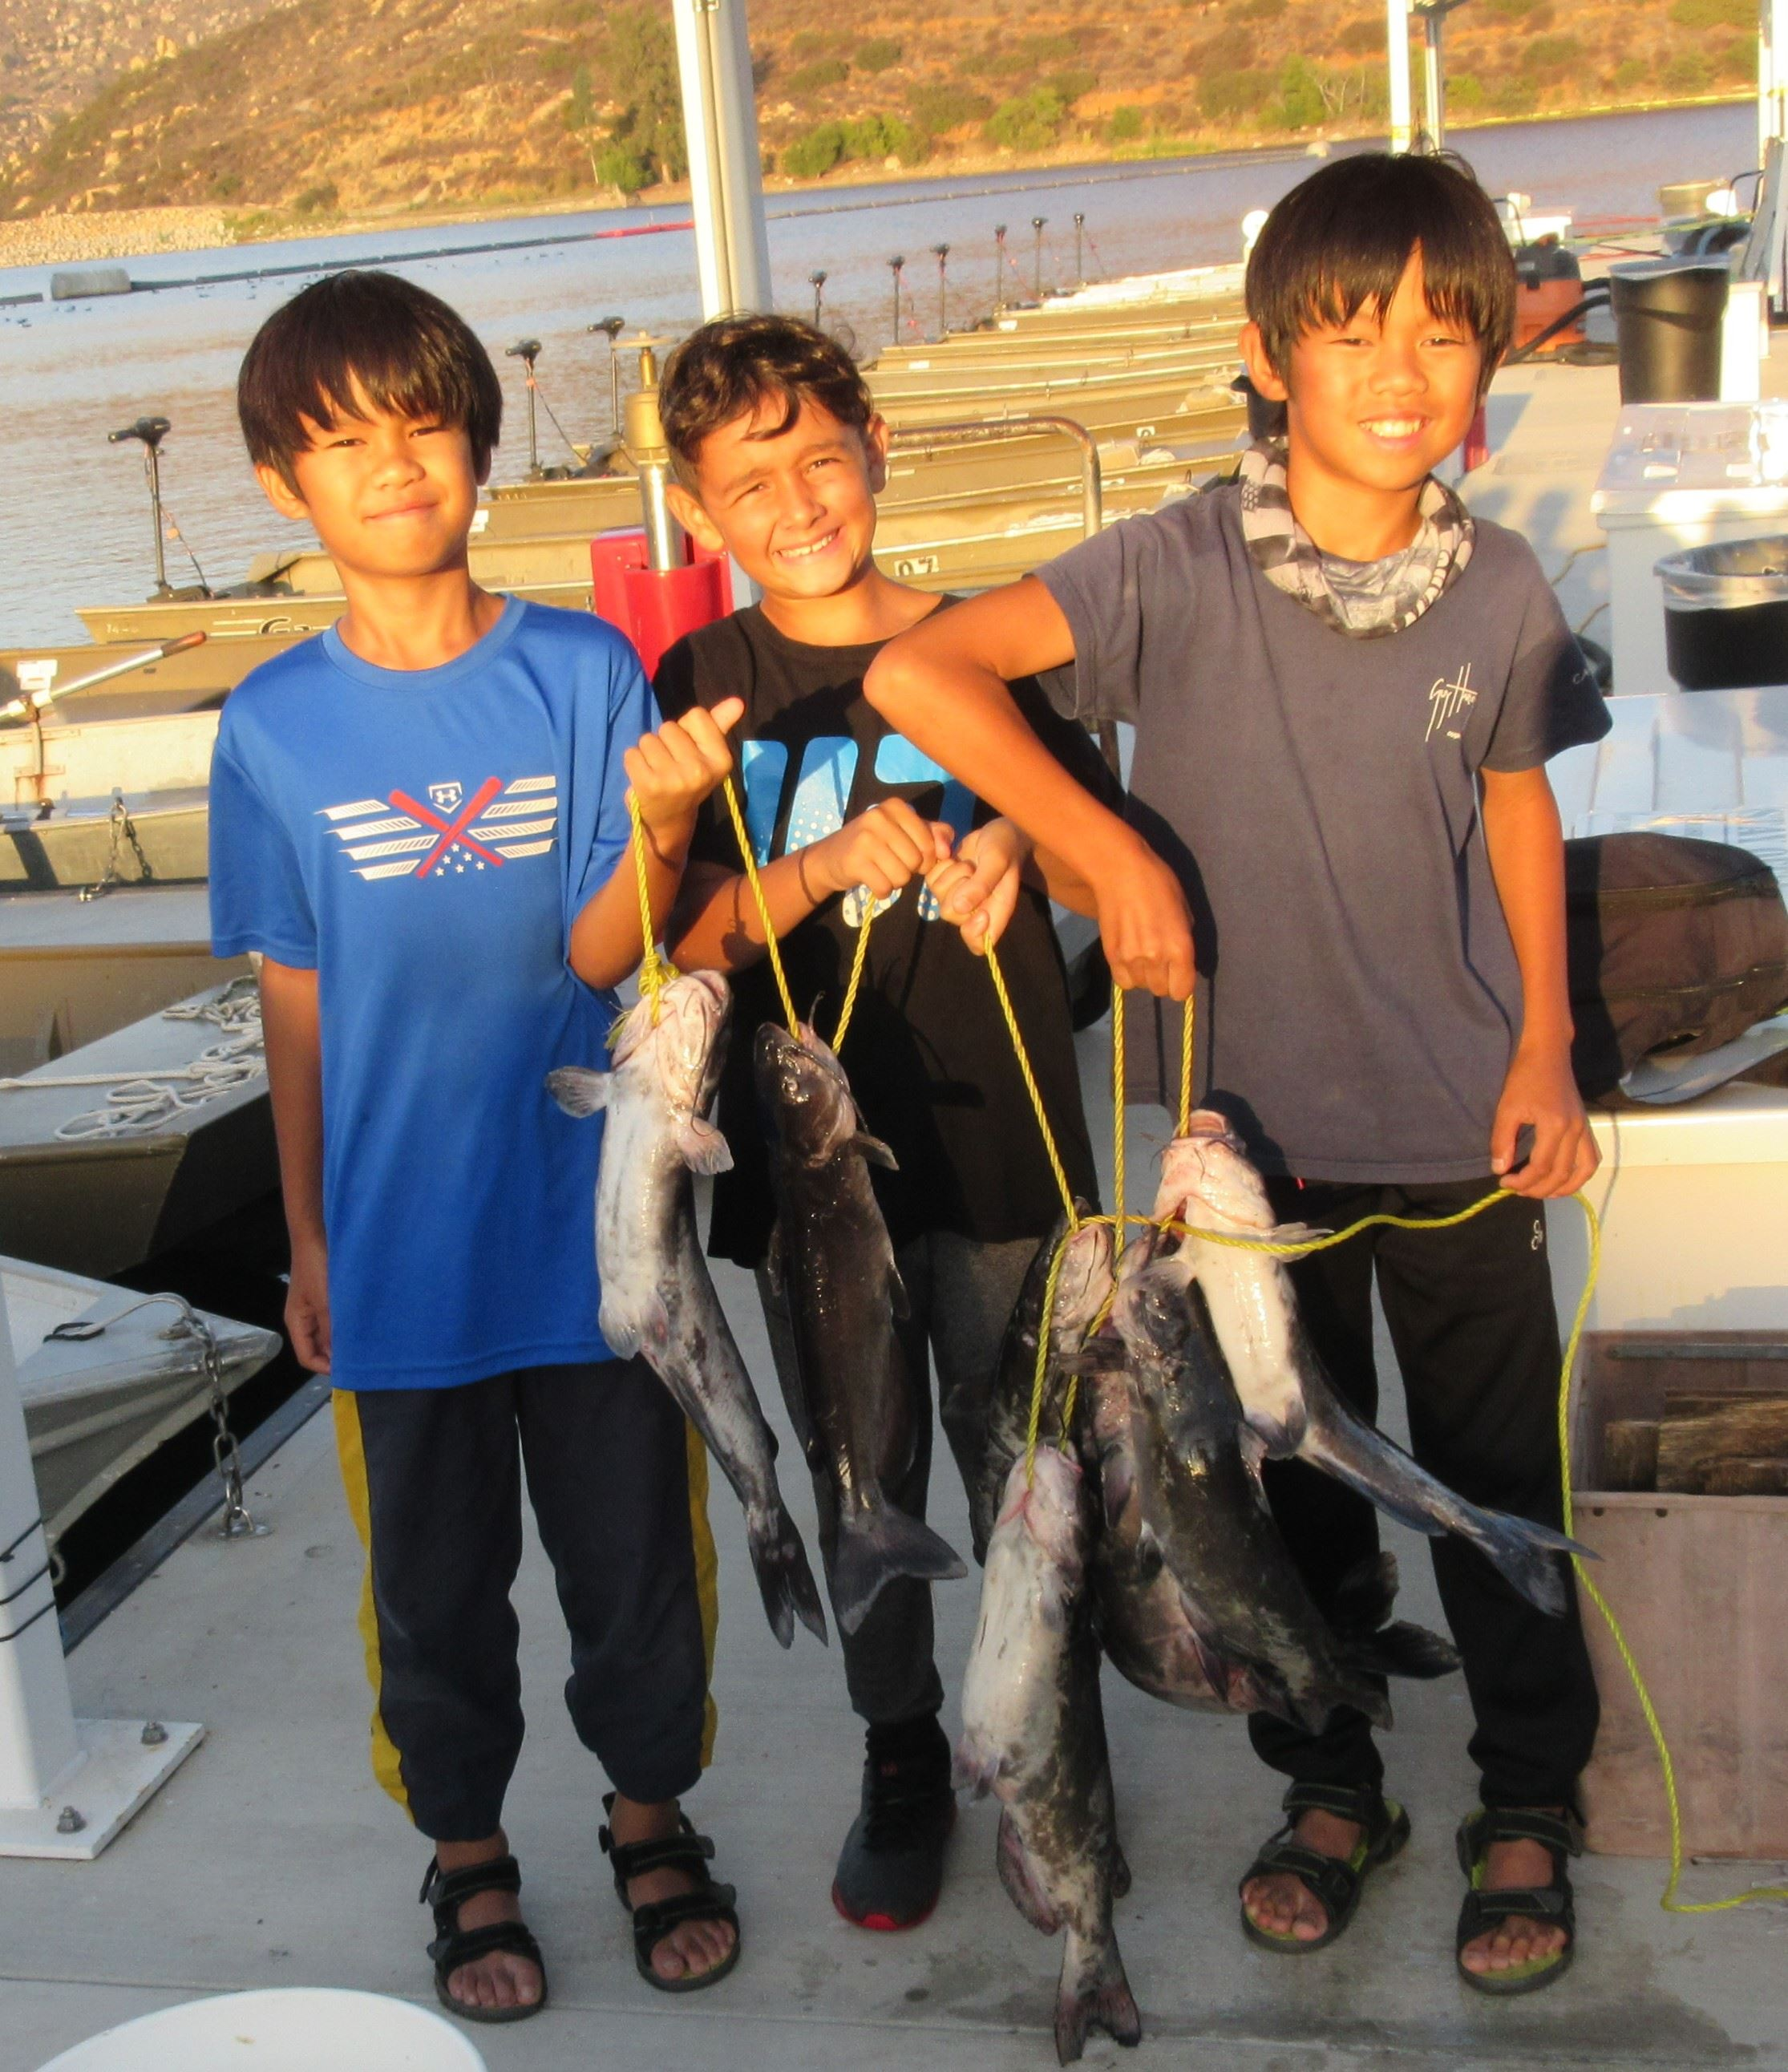 Matthew, Marcus, Aidan 7 cats, largest 6lbs. Mackerel, chicken Liver, log boom Mira Mesa